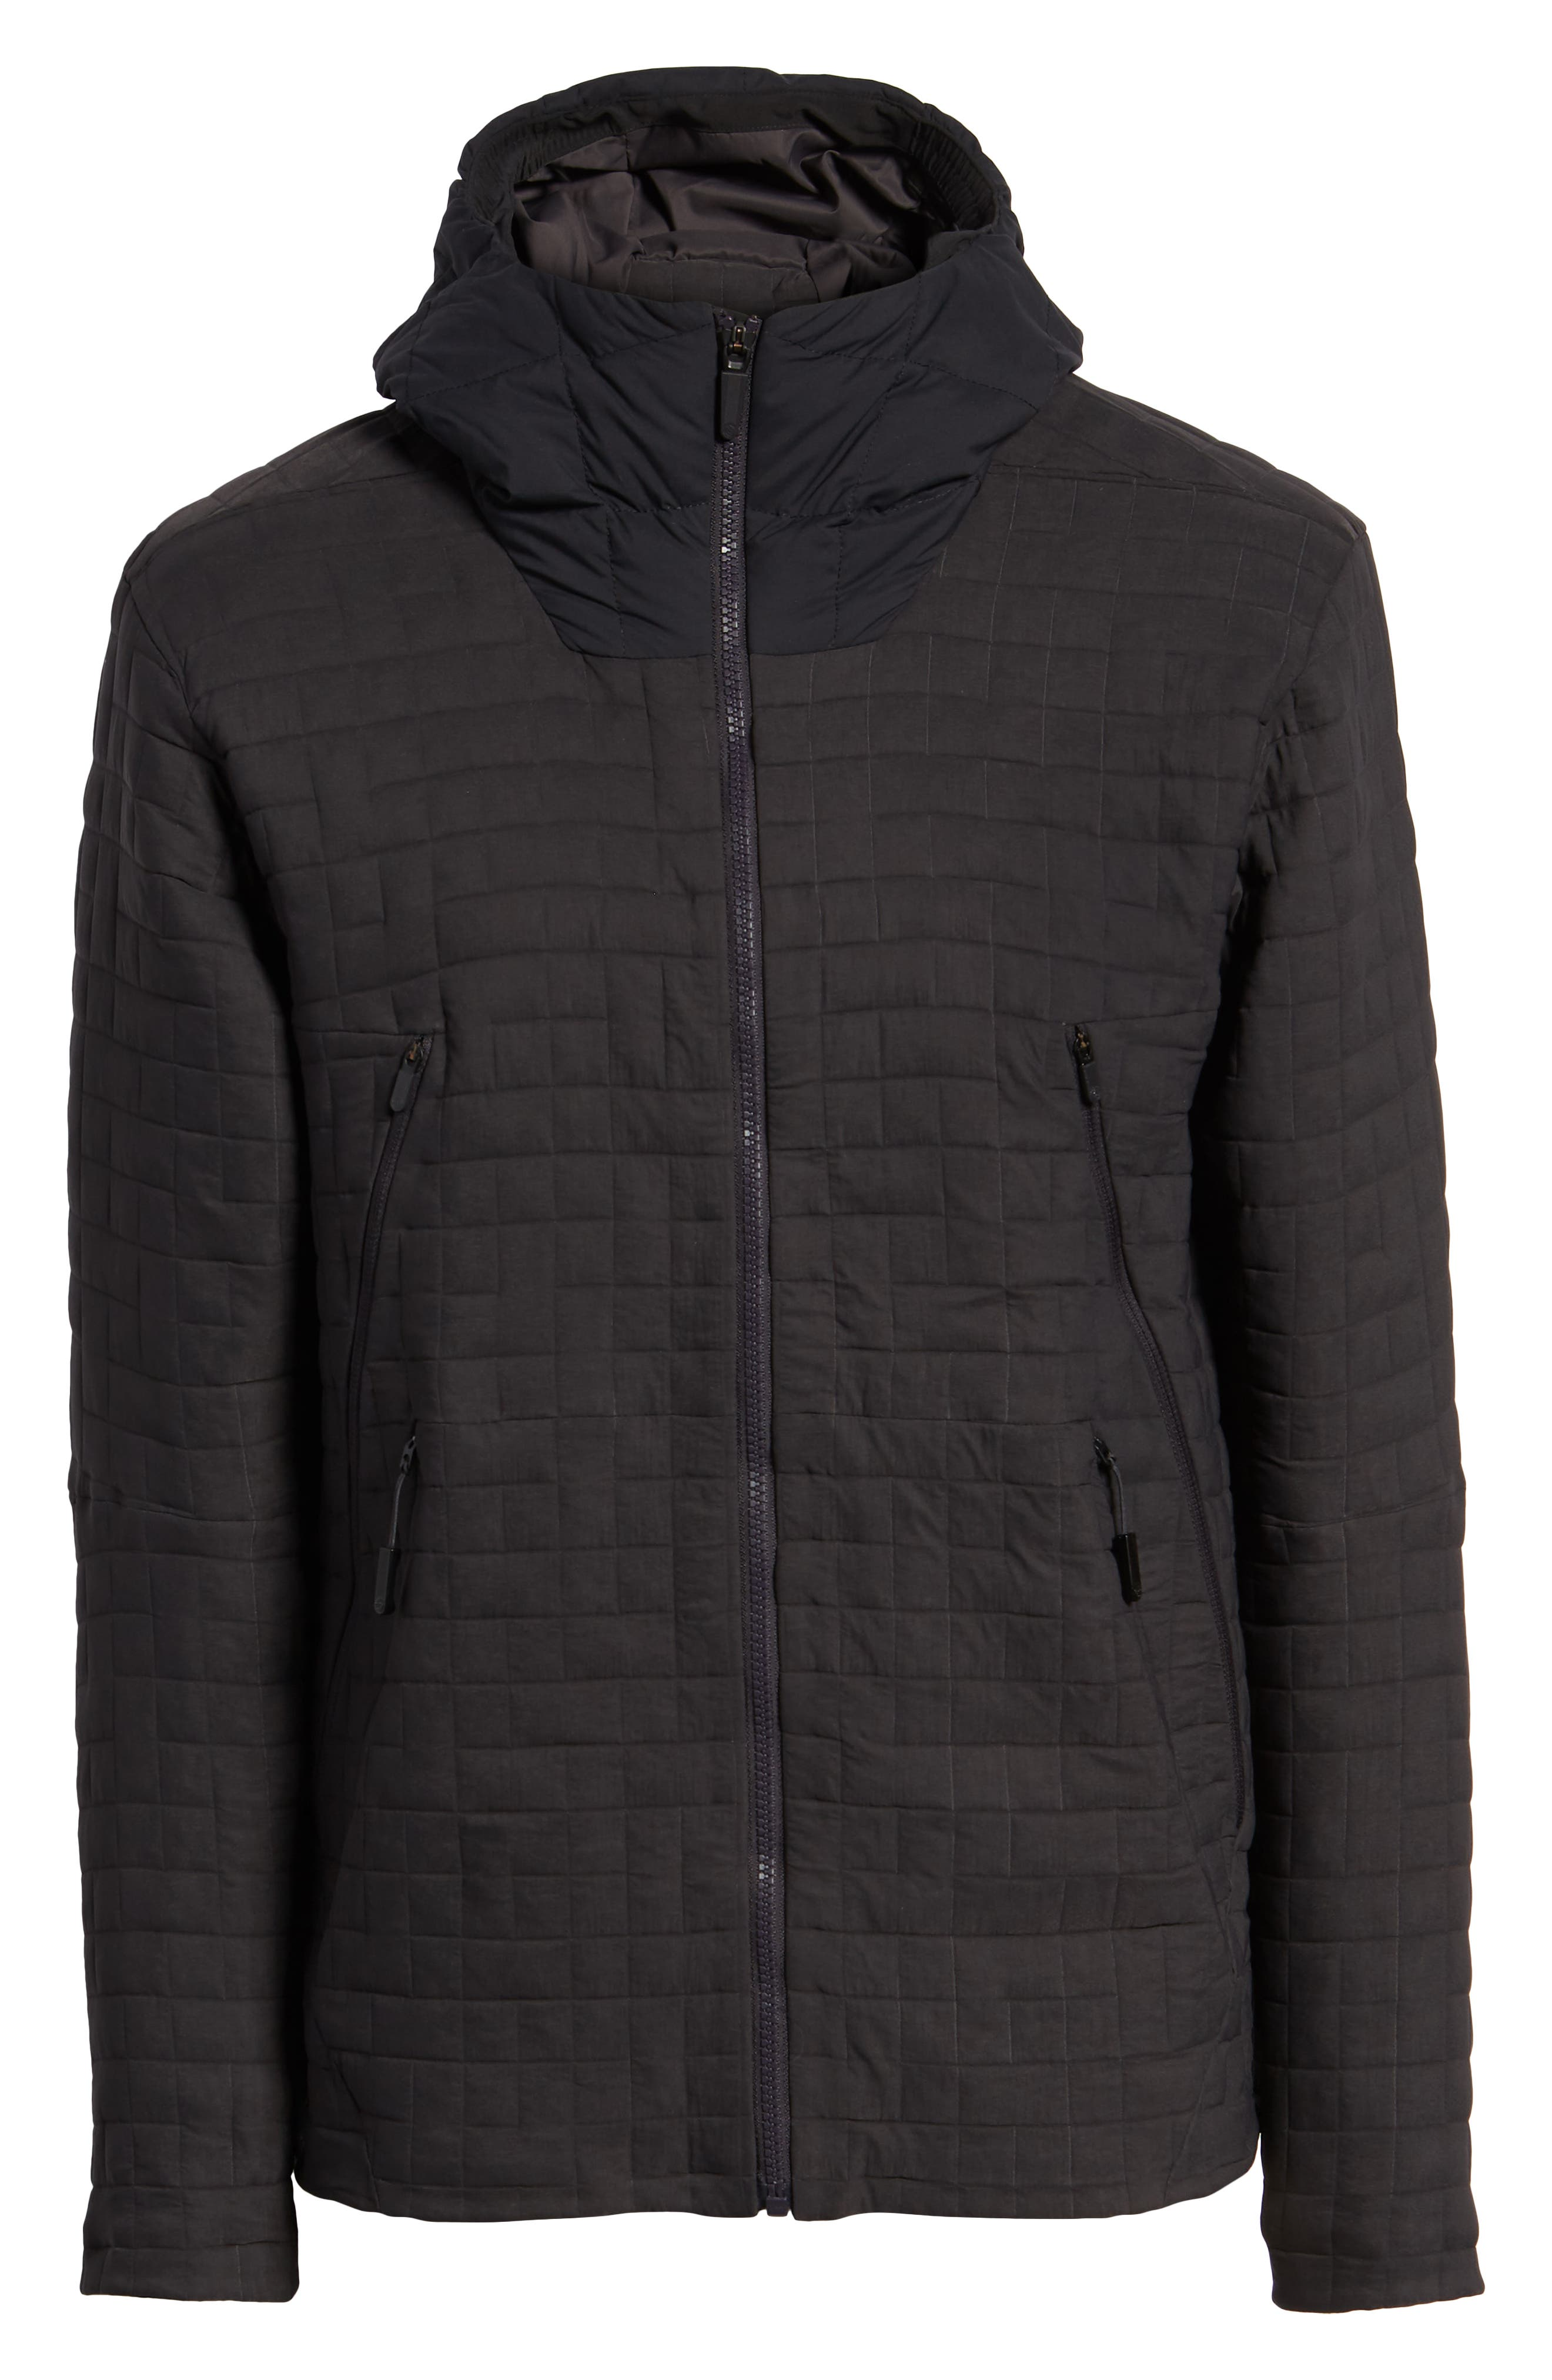 THE NORTH FACE,                             Cryos SingleCell Insulated Hooded Jacket,                             Alternate thumbnail 6, color,                             001